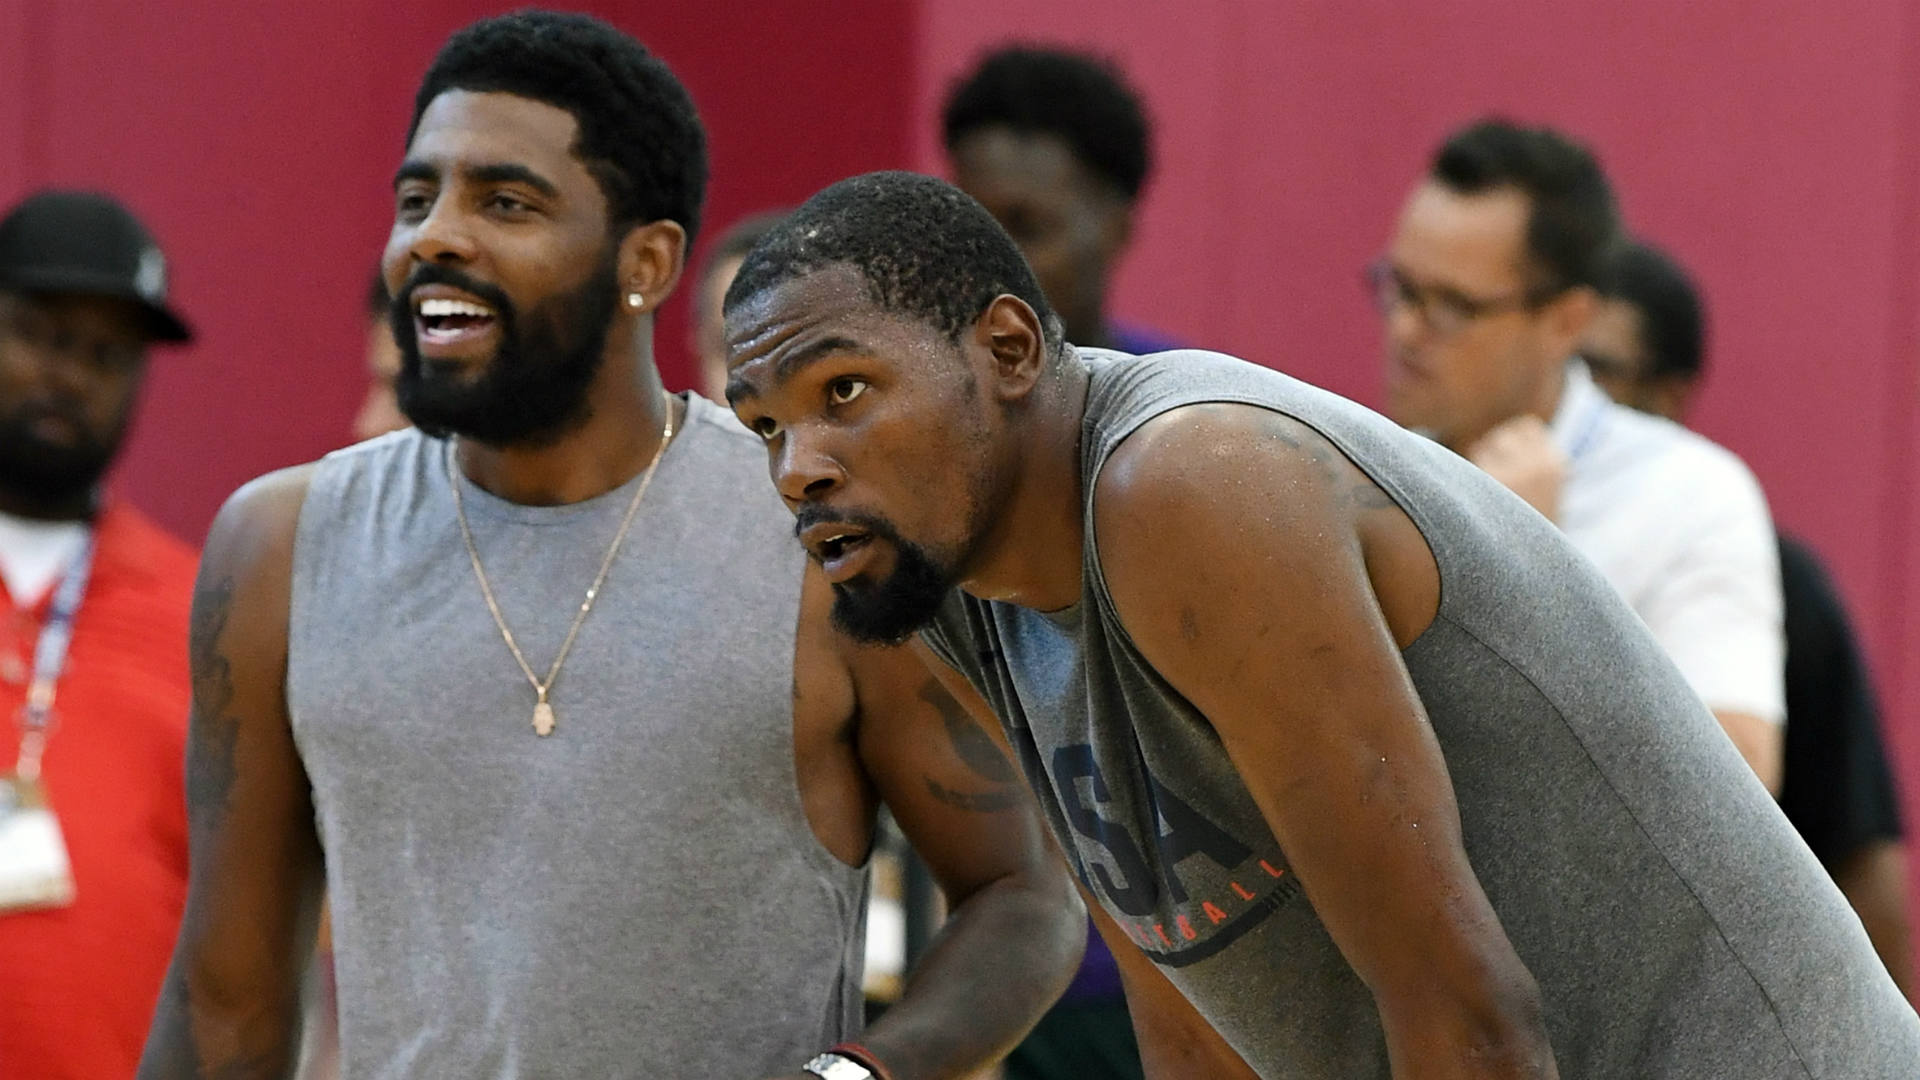 Kevin Durant free agency rumors: Star has met twice with Kyrie Irving about signing with same team